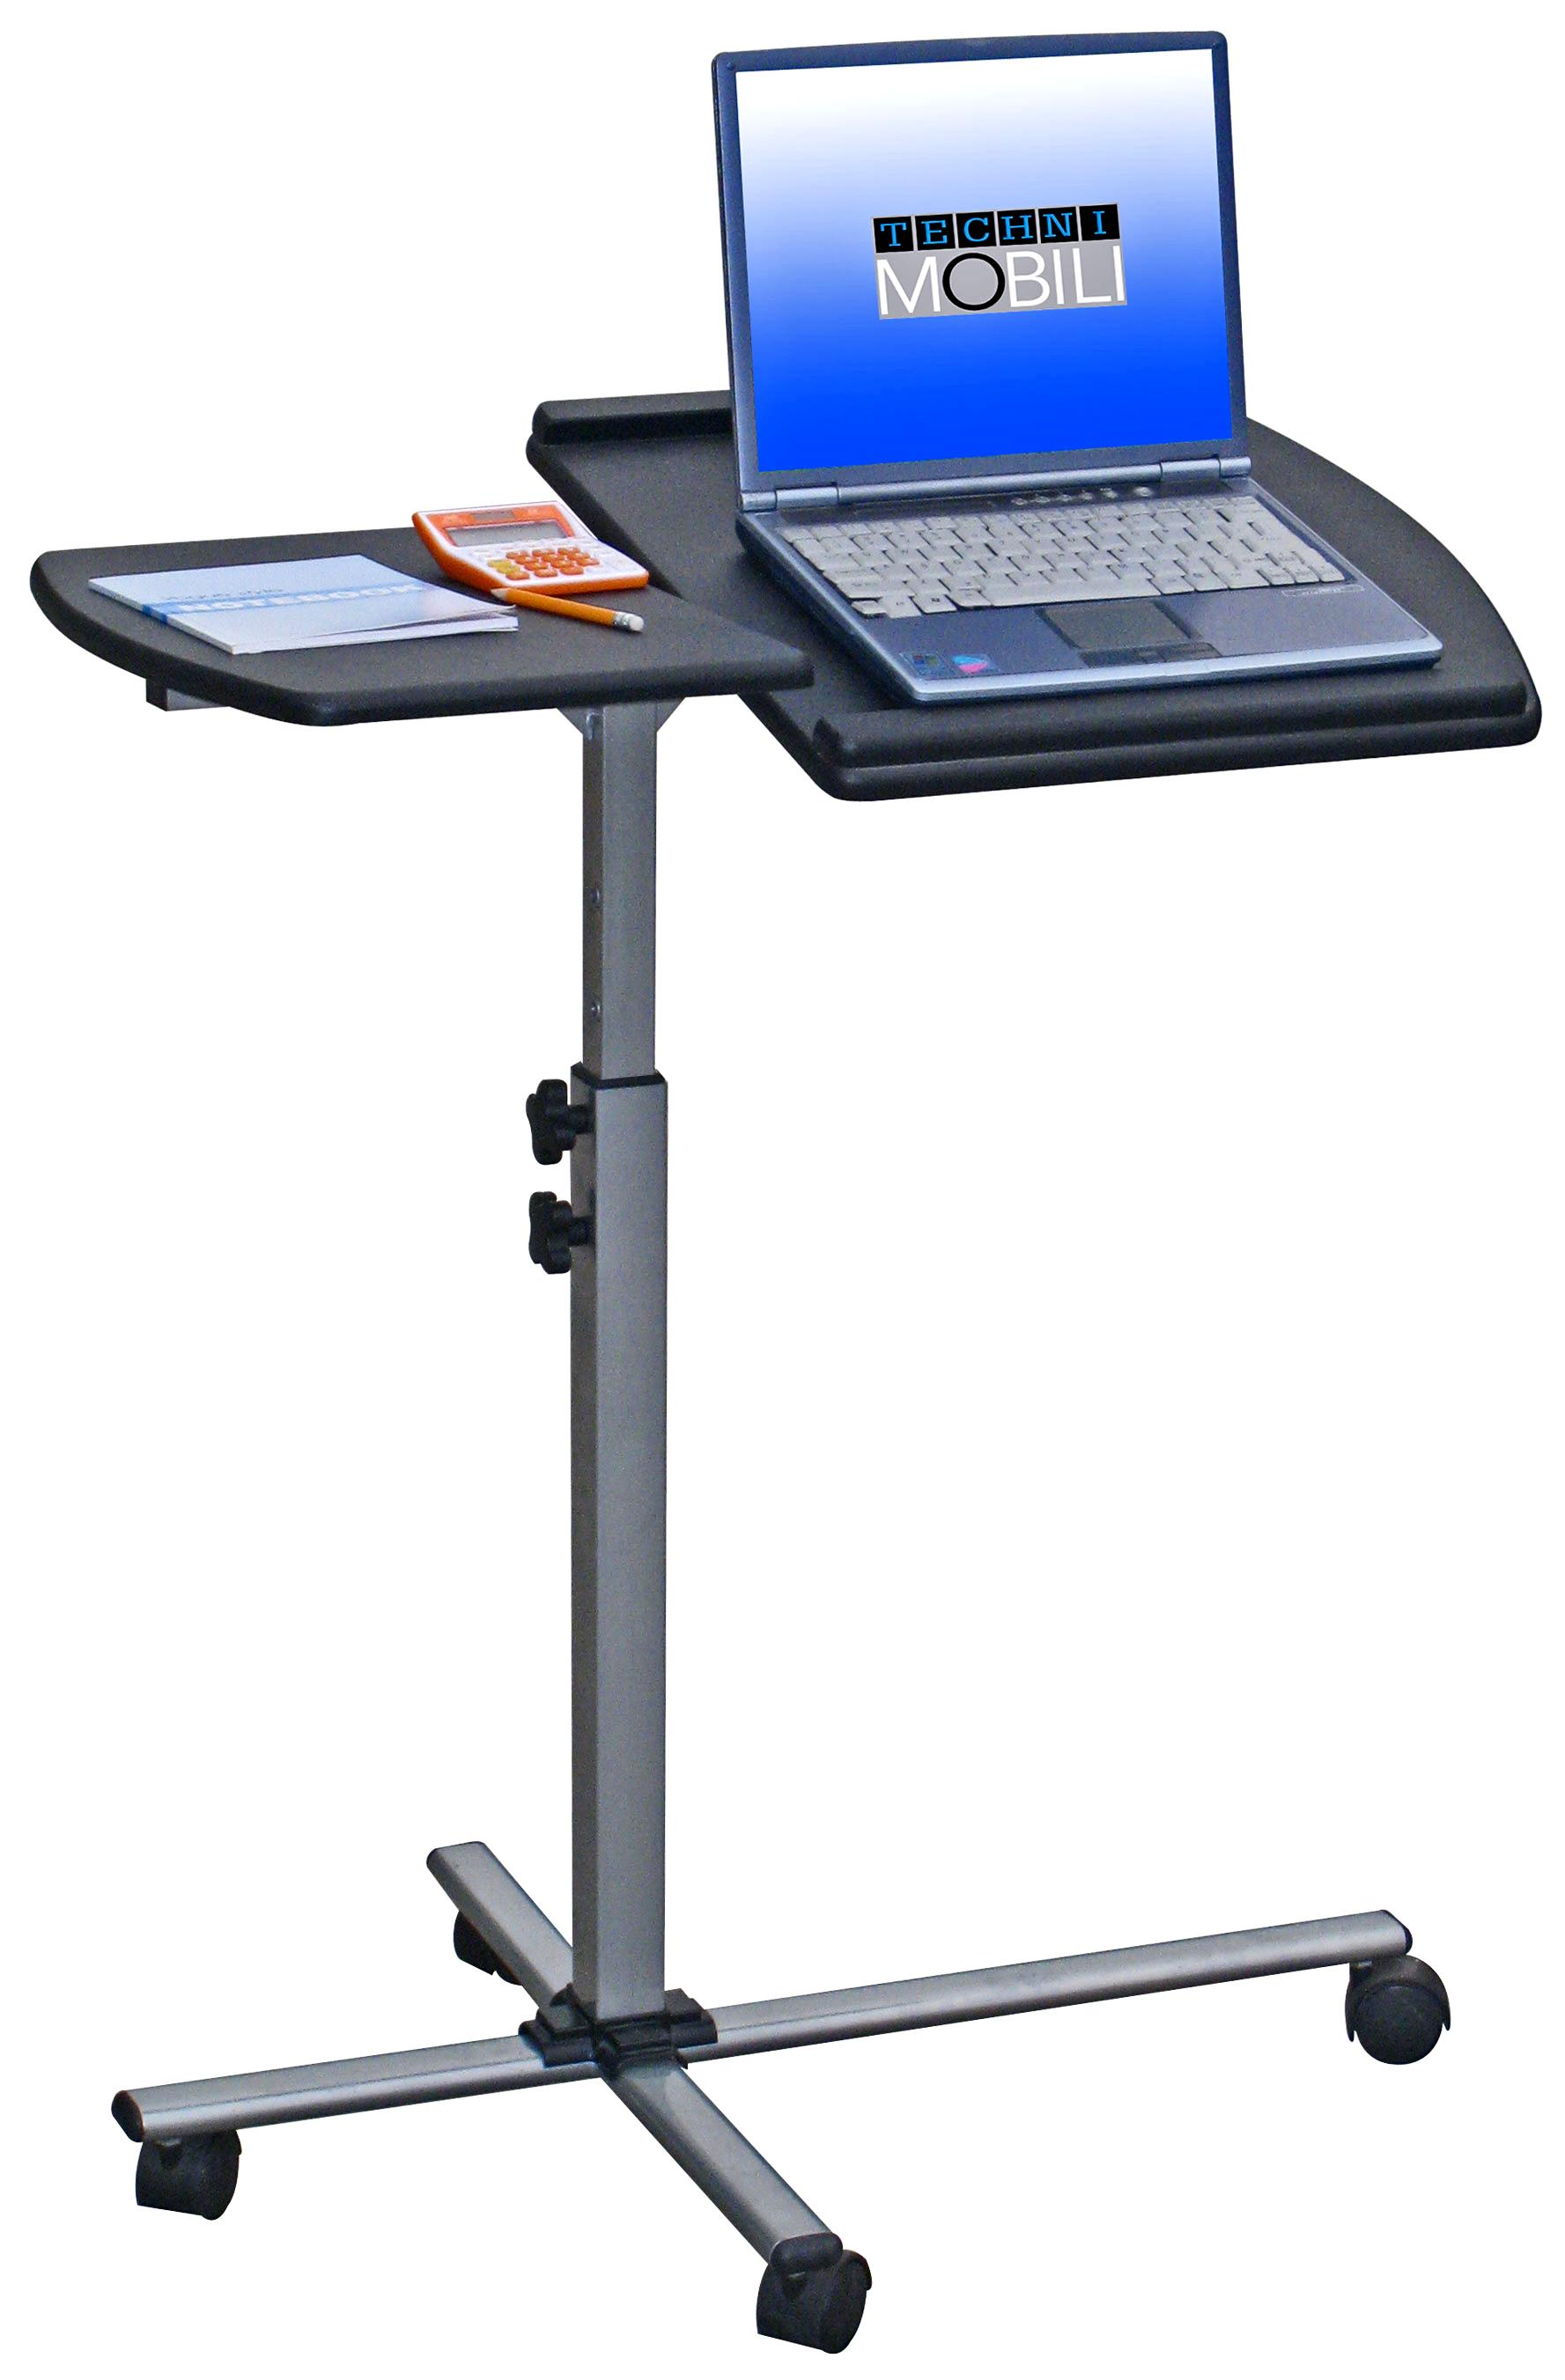 Techni Mobili Laptop Stand By Oj Commerce 41 52 42 12